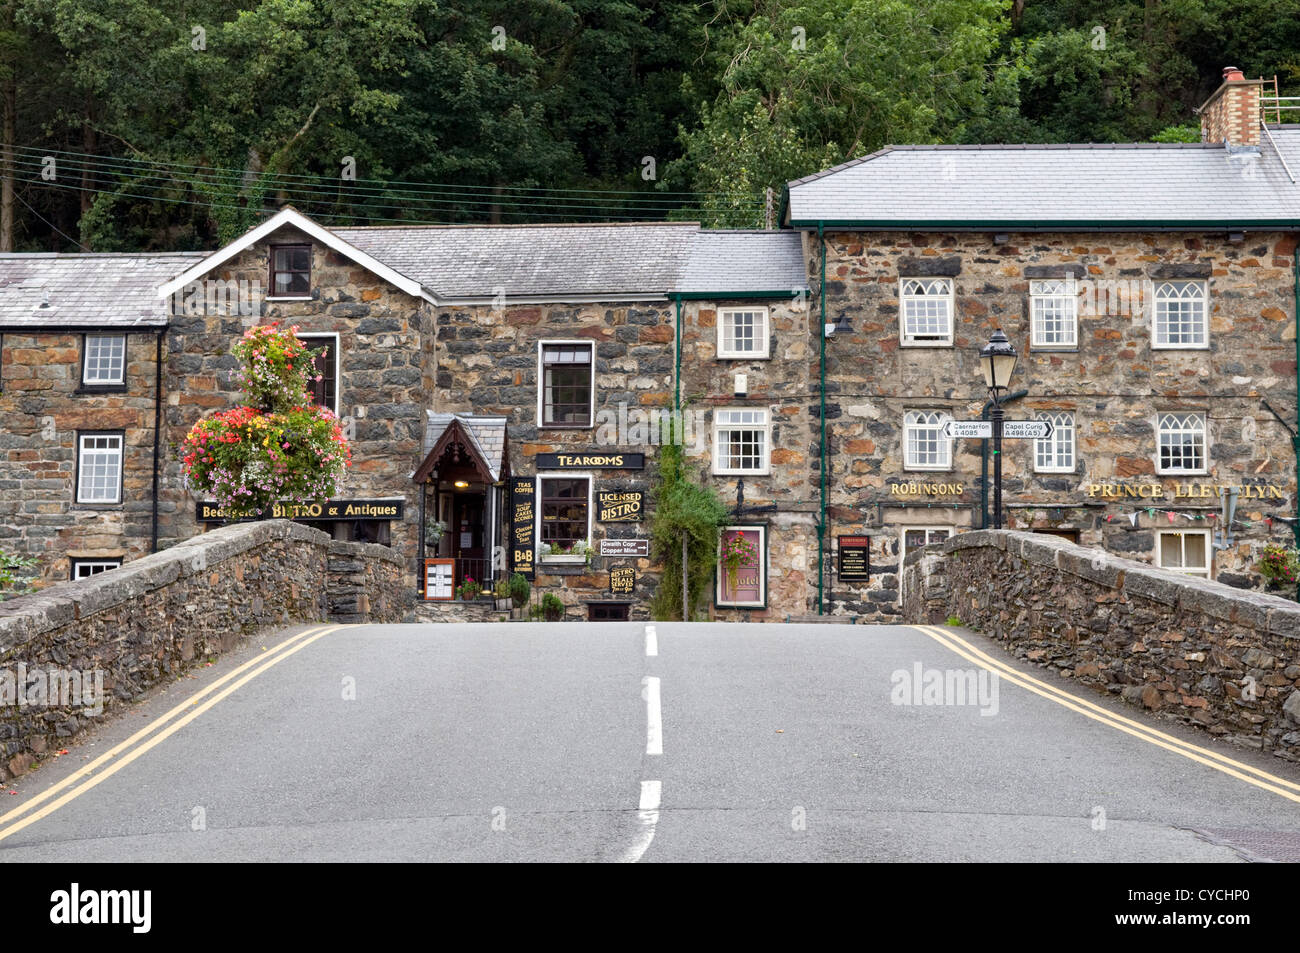 Main a498 road through the picturesque village of Beddgelert, Snowdonia, North Wales, UK - Stock Image